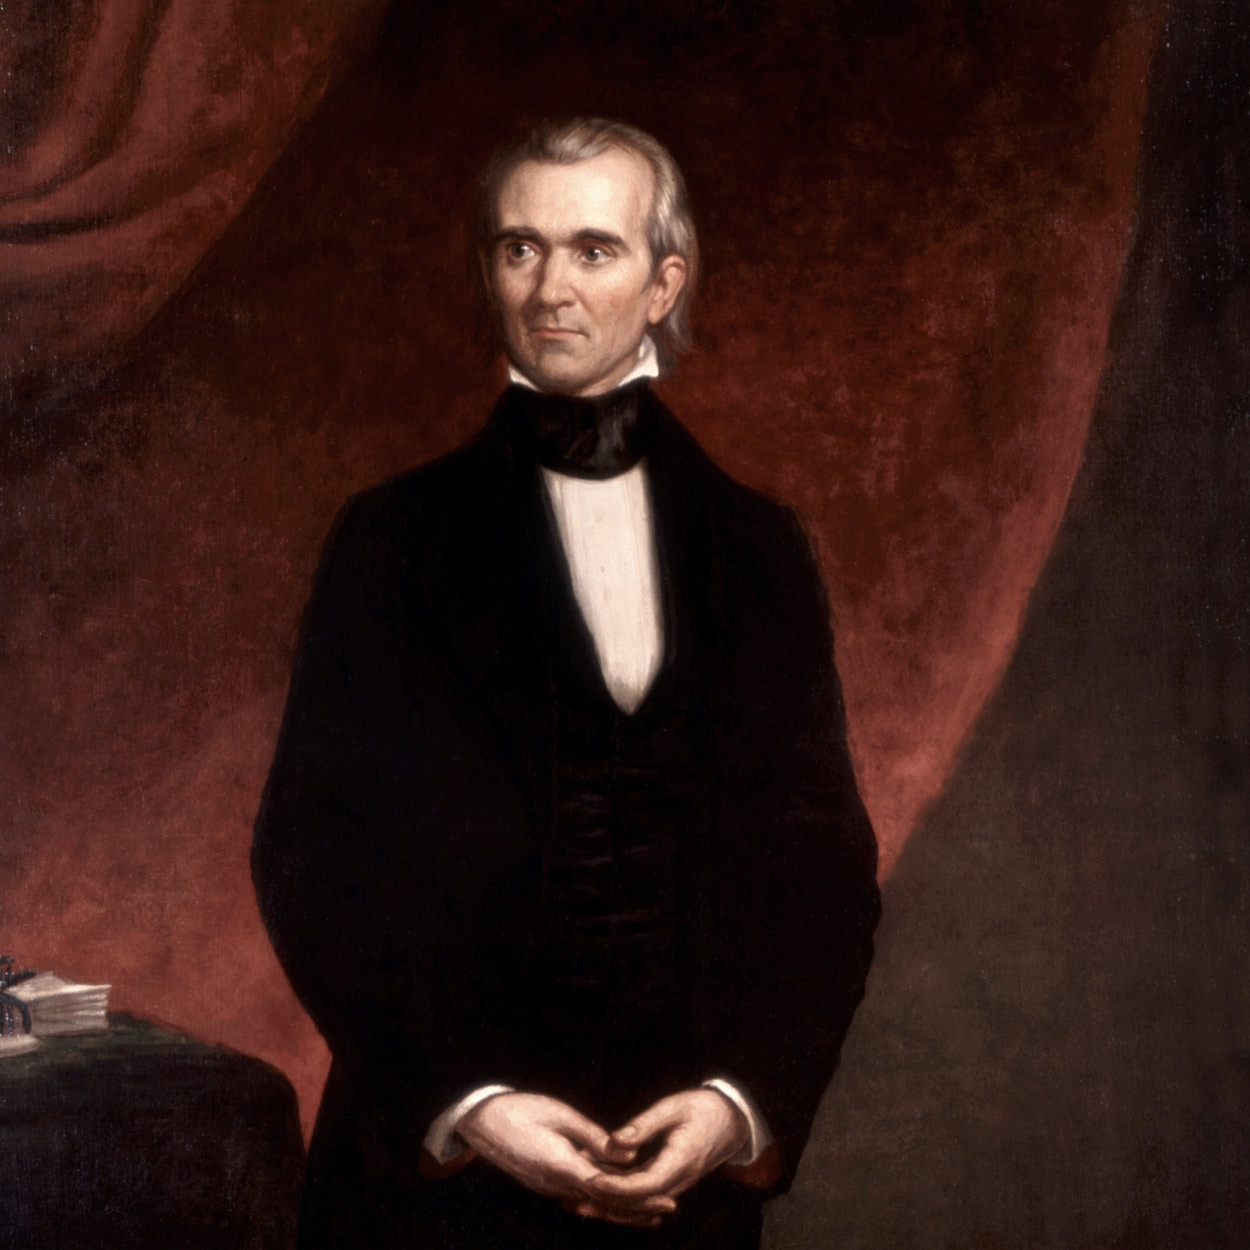 Portrait of James K. Polk, the 11th President of the United States